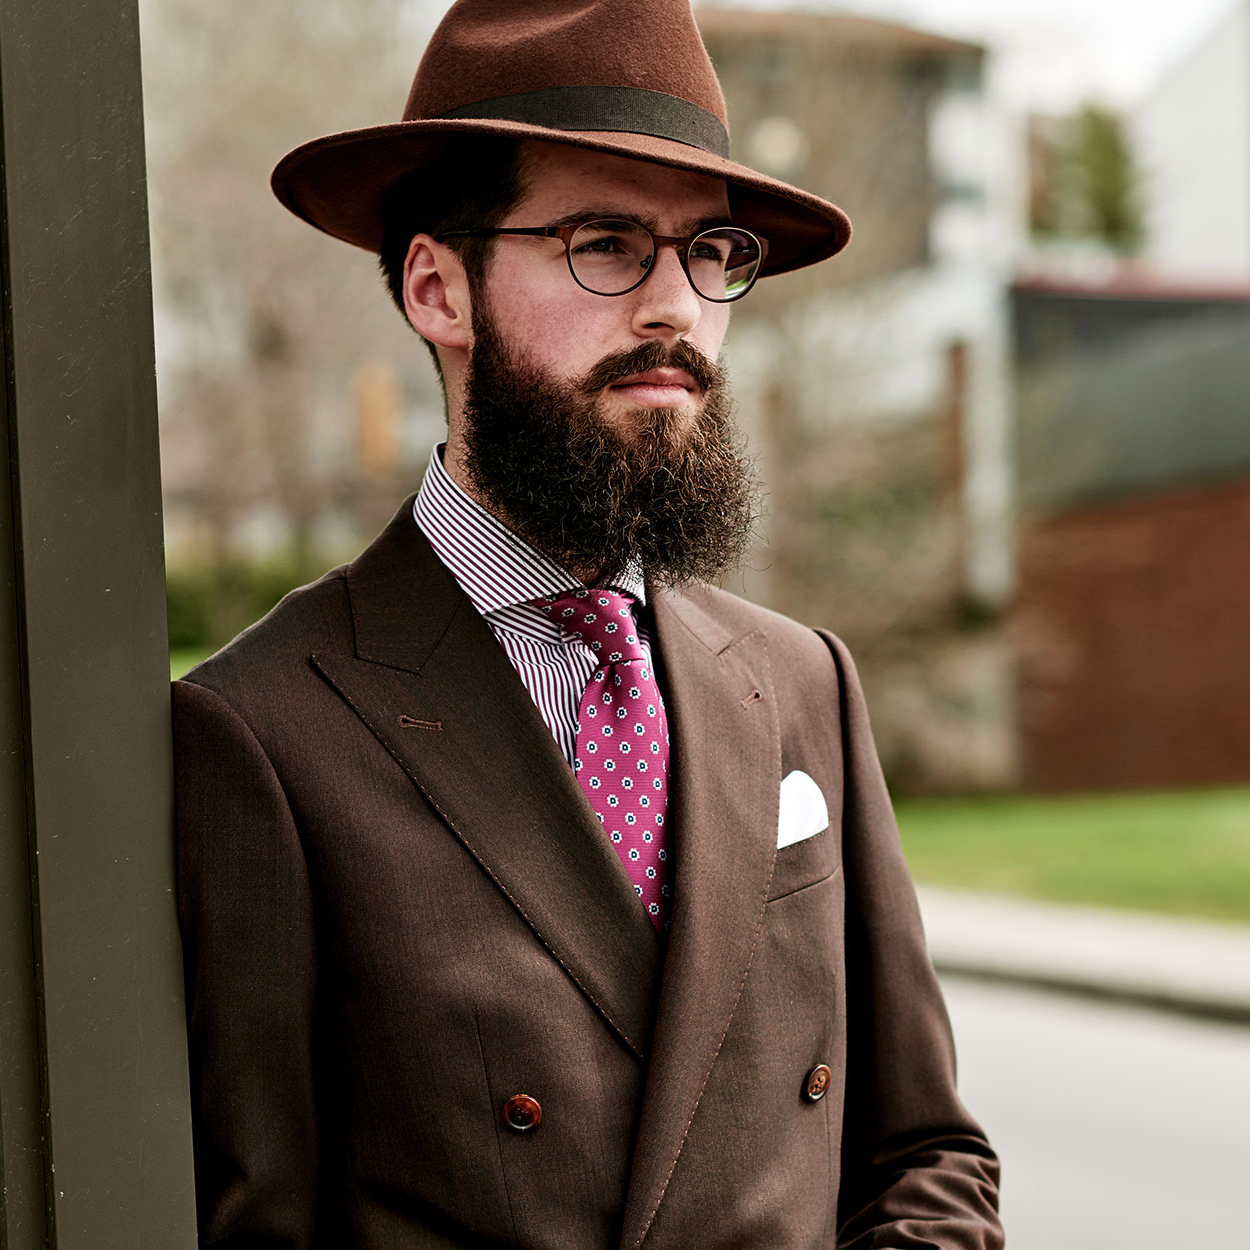 Suit Up For The Whisky Smoke With Surmesur - We are proud to announce that Surmesur Vancouver has come on as a sponsor. We had everything covered except menswear! A few things about Surmesur that you may or may not know.They combine traditional tailoring methods with the latest technology, Surmesur allows men to create distinctive custom clothing tailored to their tastes and measurements and offered at ready-to-wear prices. We offer an original and innovative shopping experience in four easy steps: choosing among more than 10,000 suiting and shirting fabrics; selecting the cut and other options; getting measured; and finally, fitting and final alterations.surmesur.com